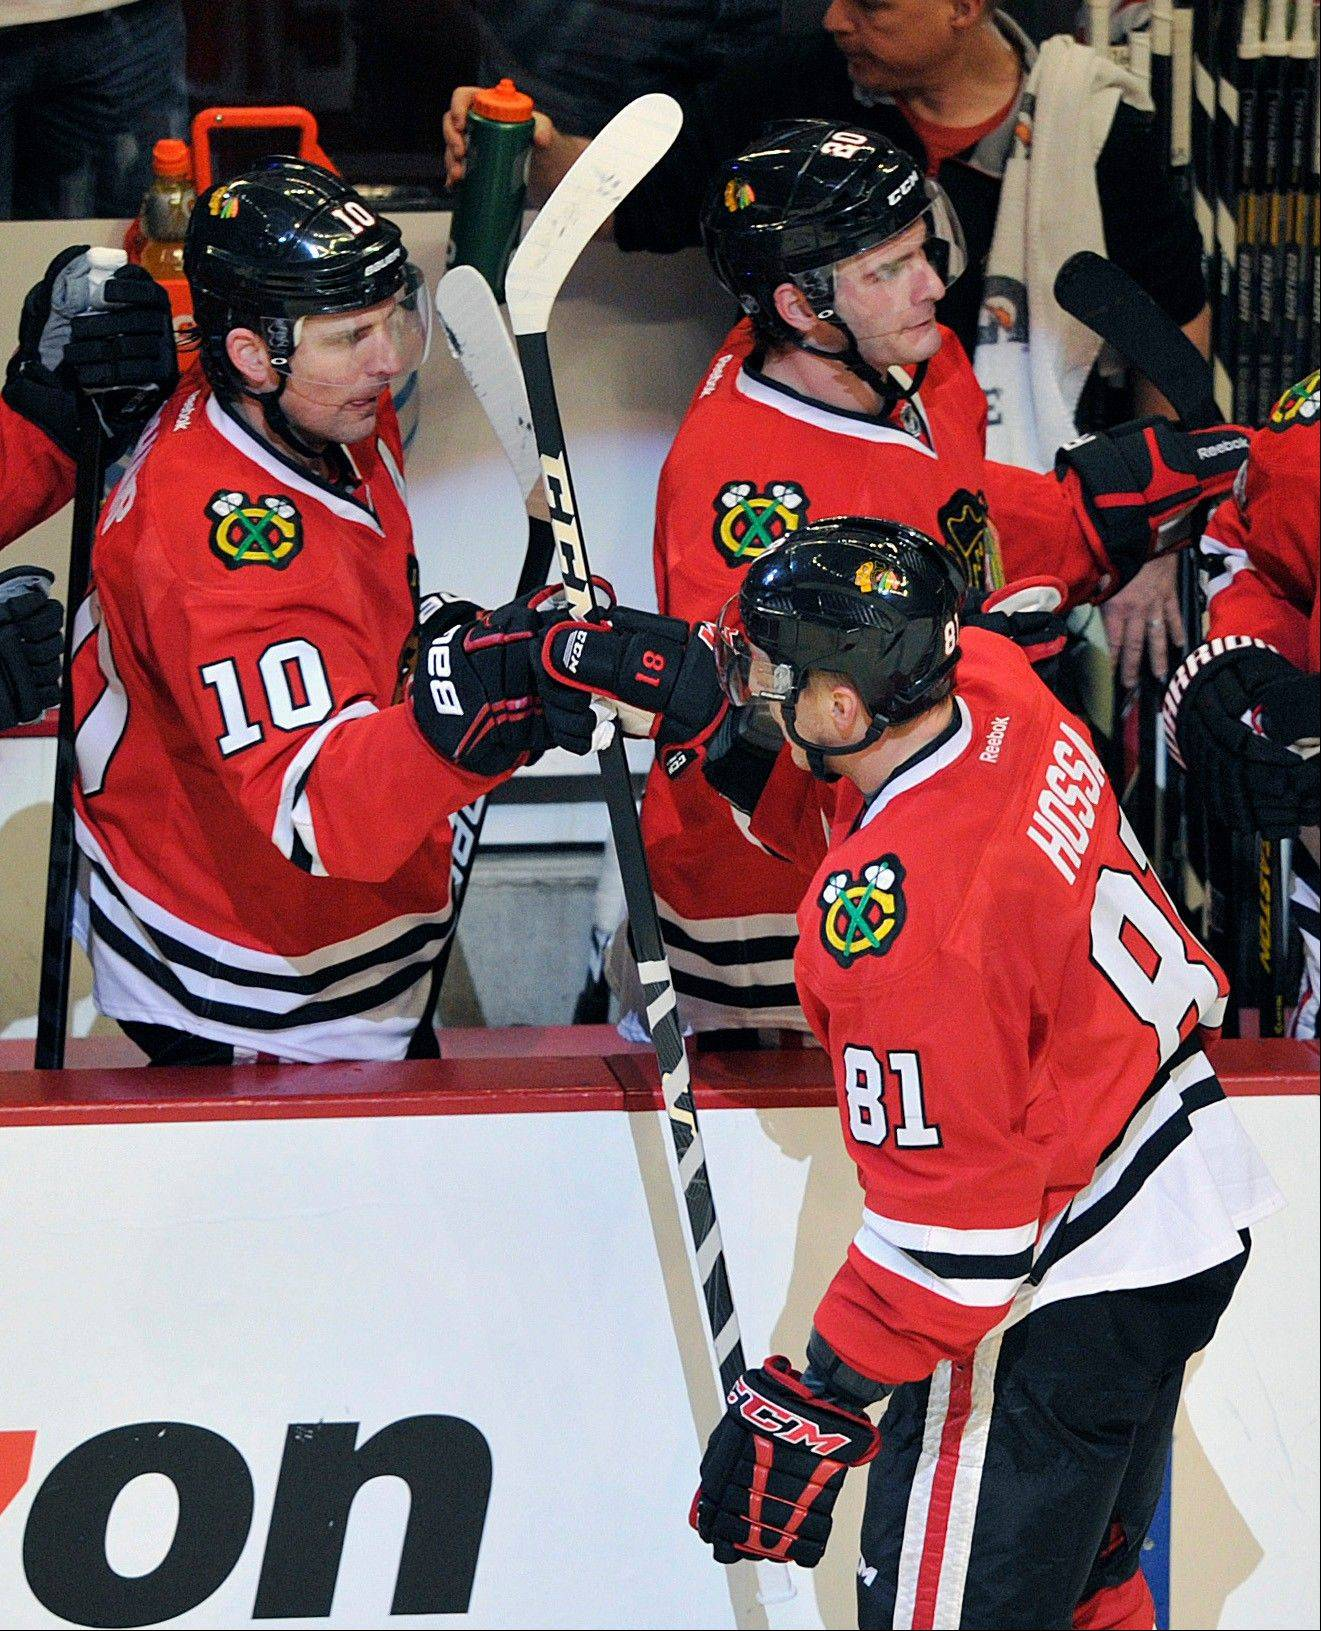 Patrick Sharp, left, who missed 20 of the Blackhawks' 48 regular-season games because of a shoulder injury, is hoping to play a key role in the playoffs.